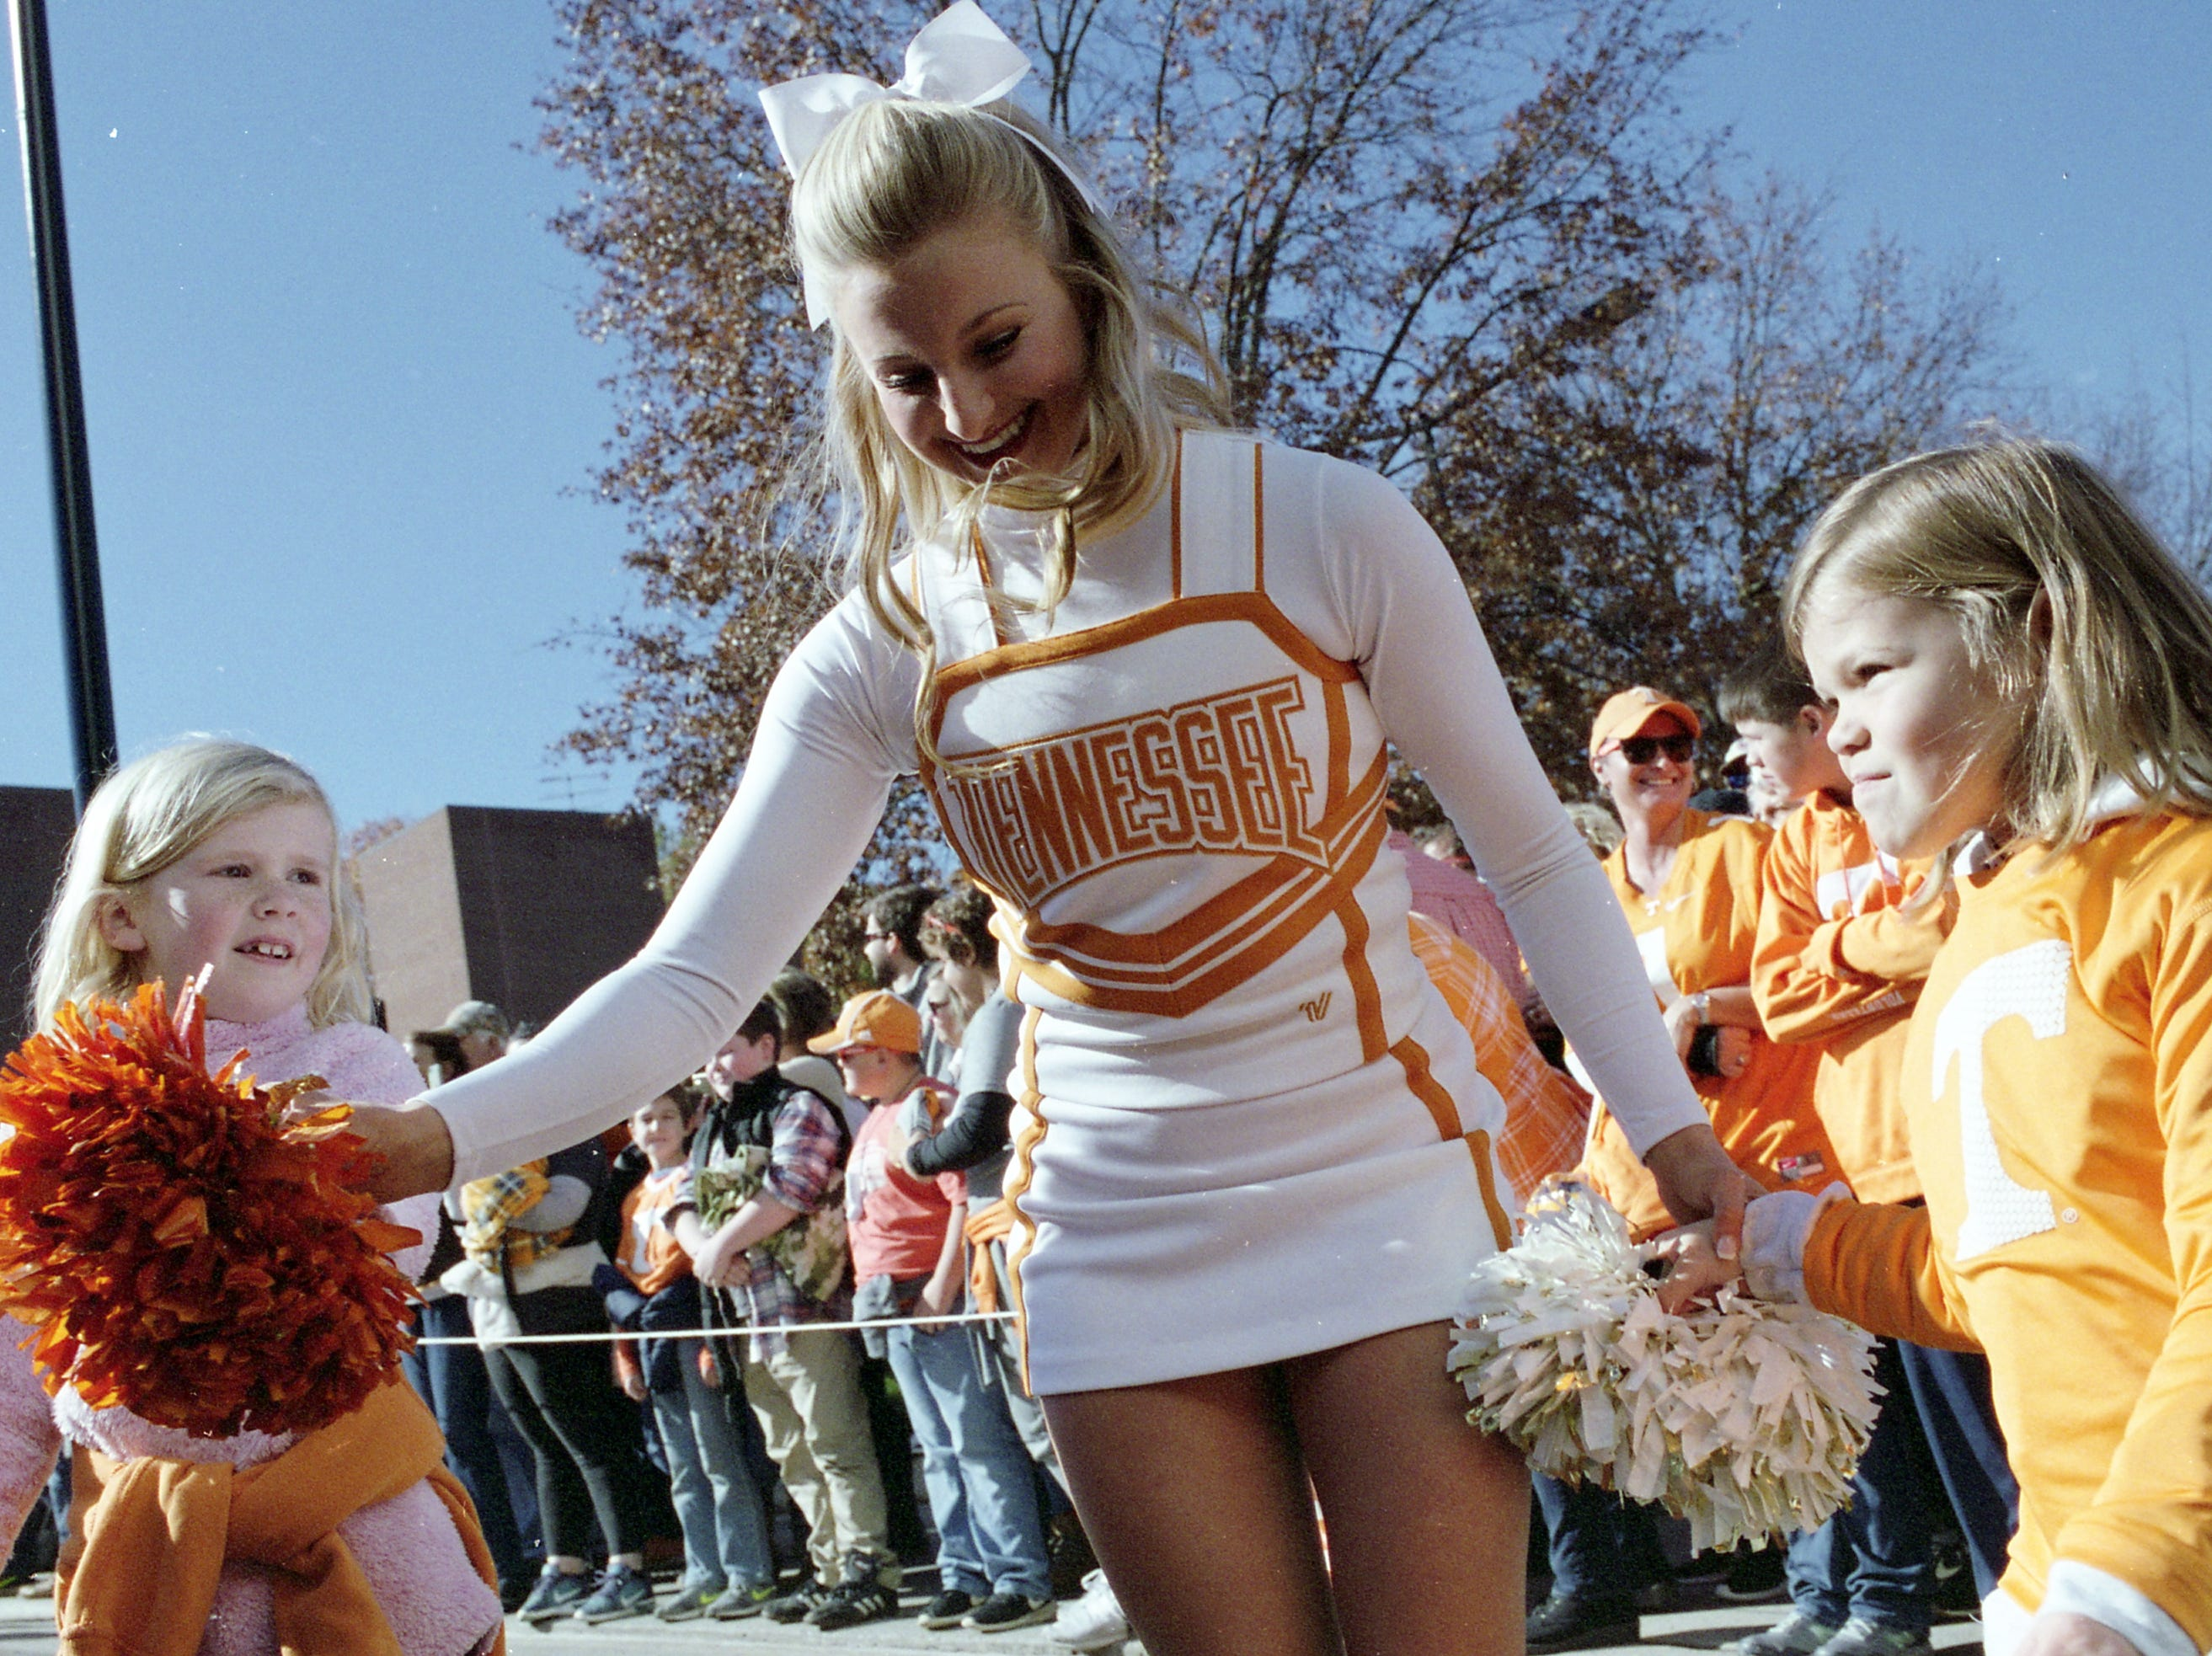 A UT cheerleader teaches kids how to cheer during a game between Tennessee and Missouri at Neyland Stadium in Knoxville, Tennessee on Saturday, November 17, 2018.